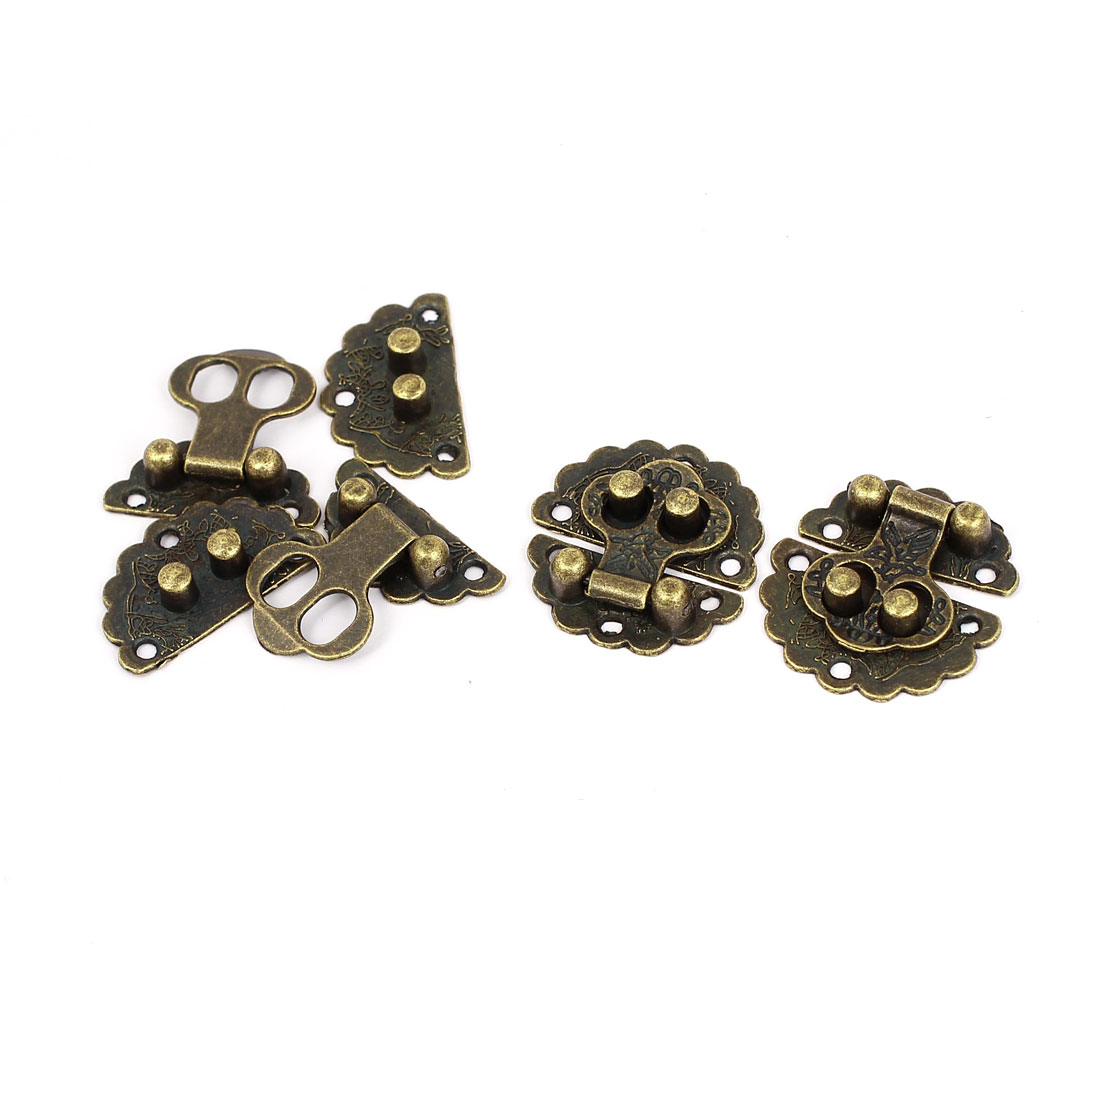 Antique Style Wood Case Chest Box 30mm Round Clasp Hasp Latch Bronze Tone 4 Set